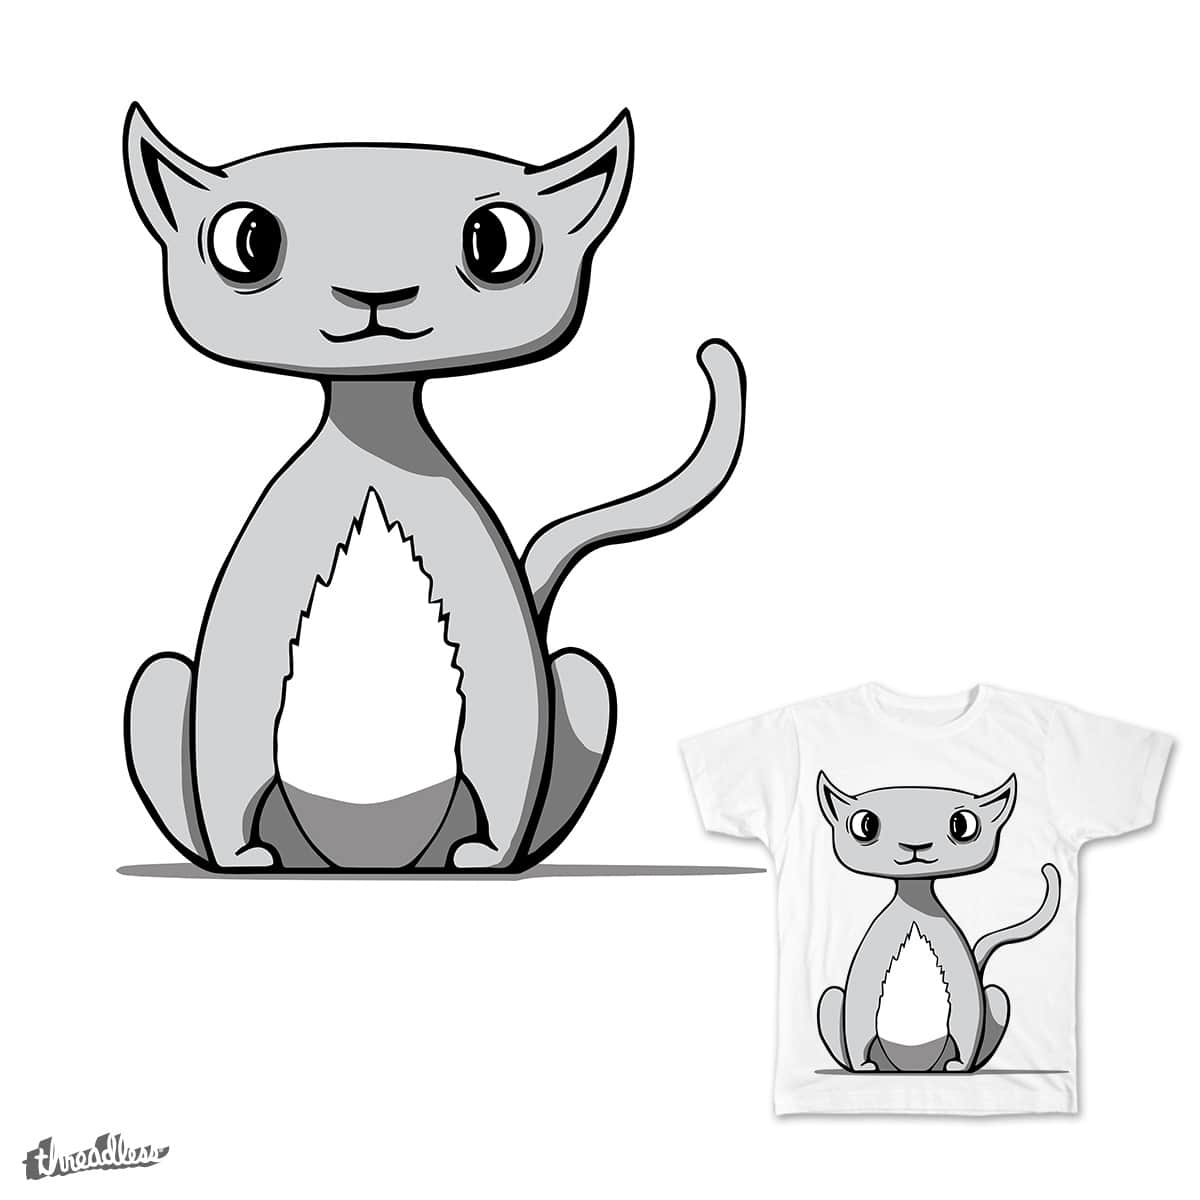 Cat by Benderonny on Threadless